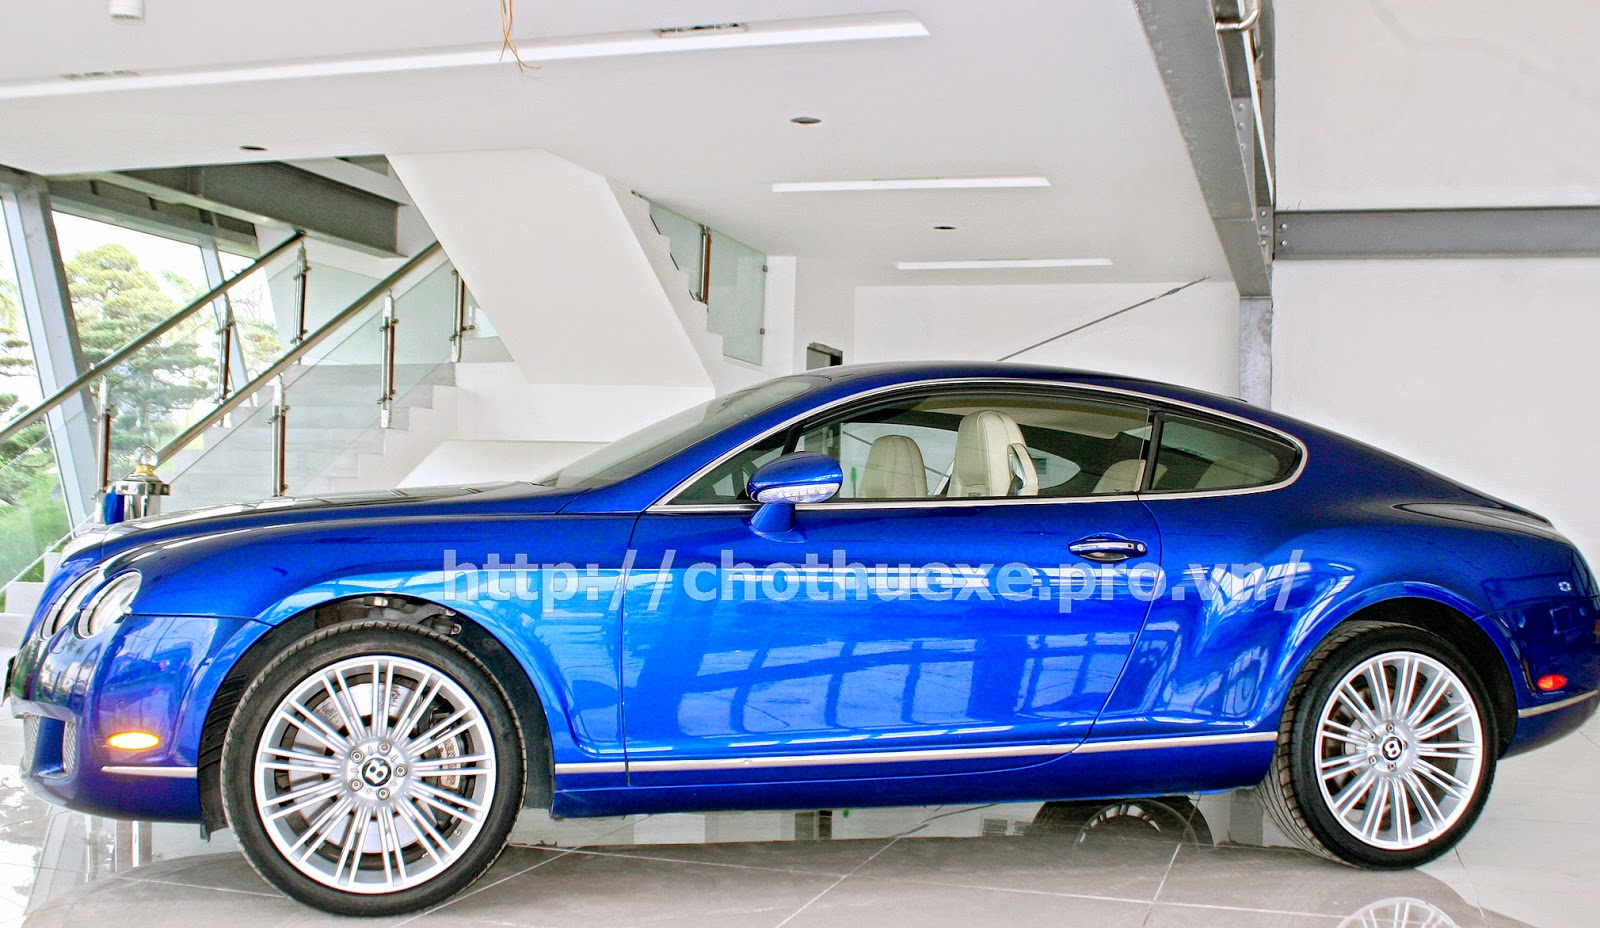 Cho thuê xe Bentley Coninental GT Speed 1